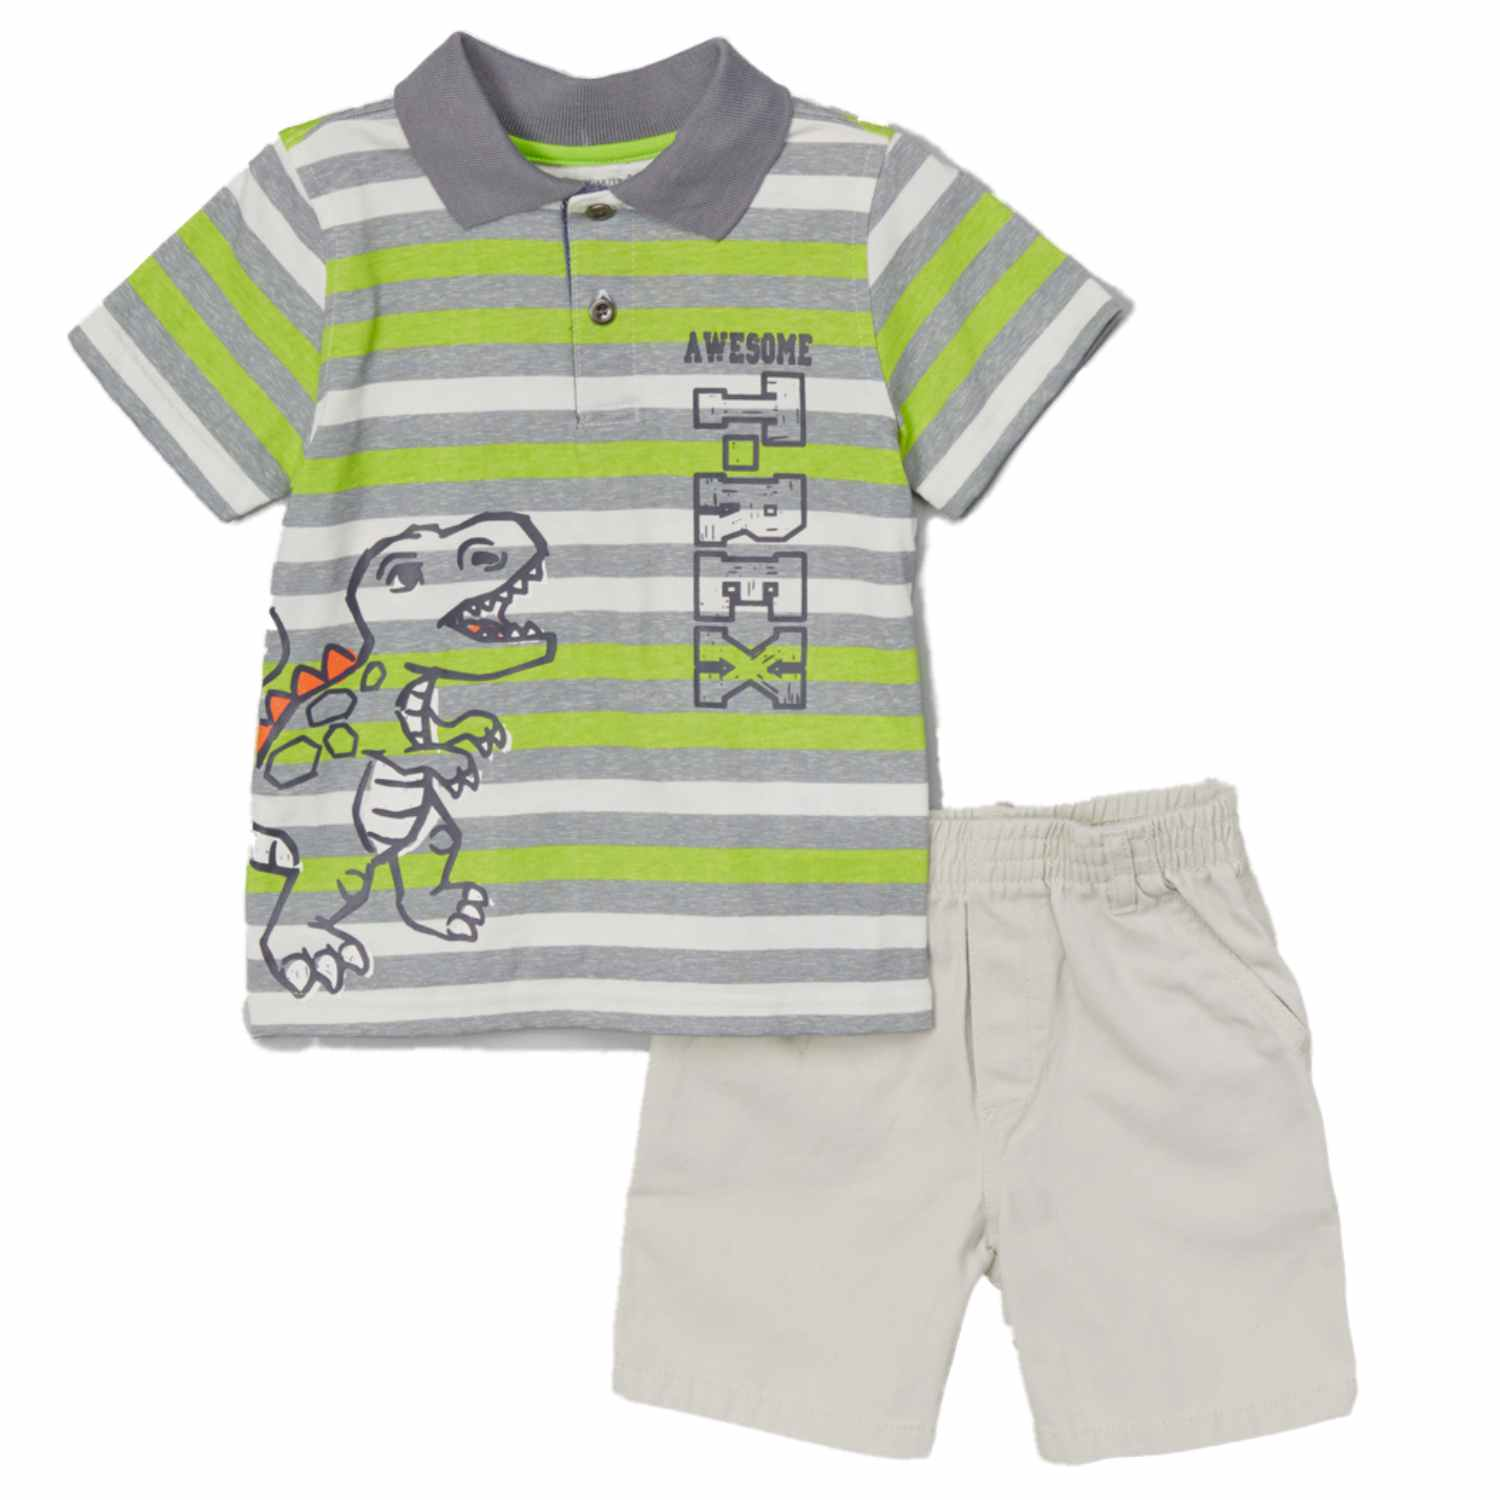 Kids Headquarters Infant Boys 2-Piece Awesome T-Rex T-Shirt & Shorts Set